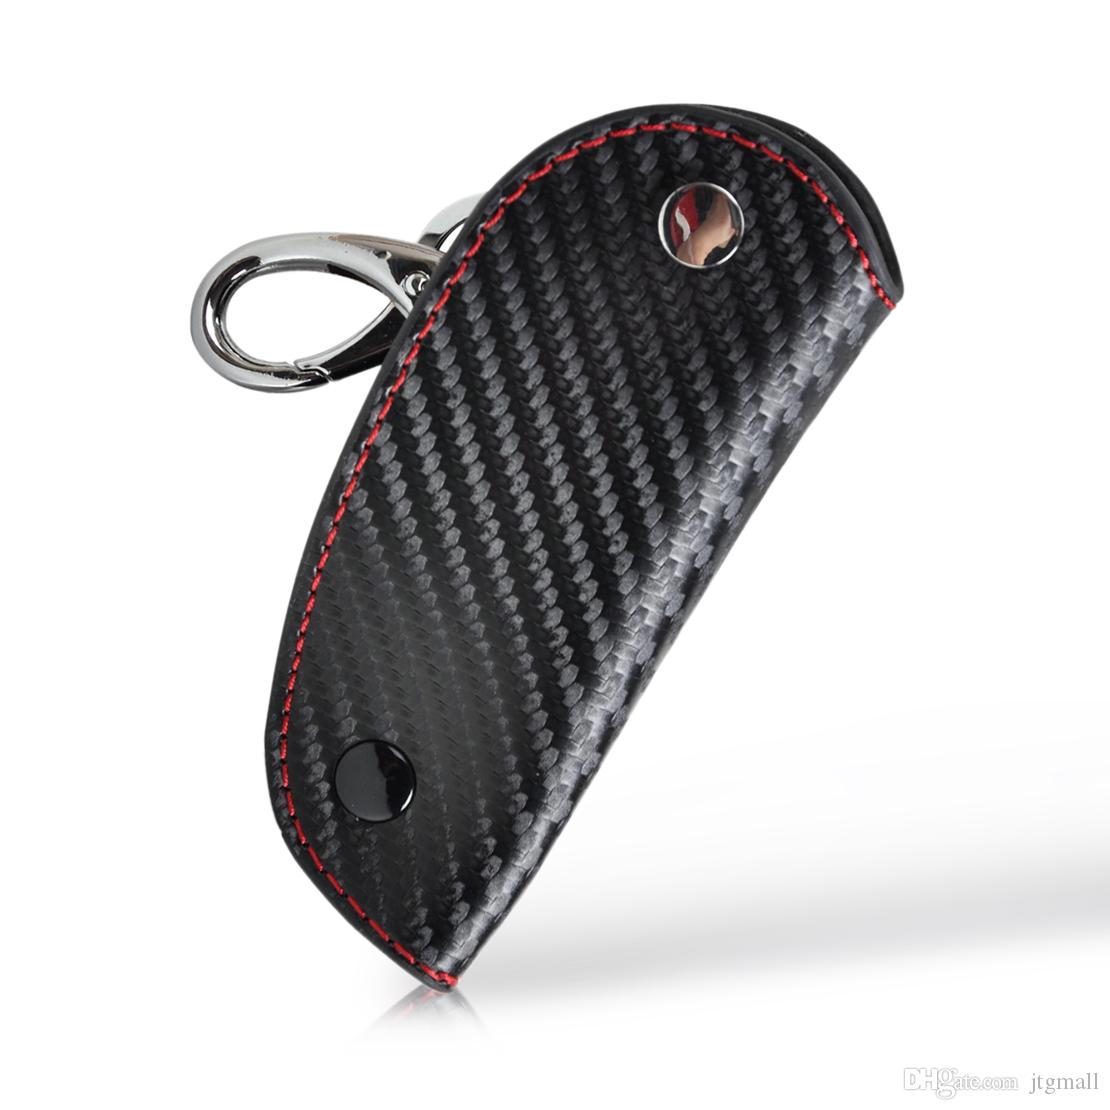 4b57e34e8f4438 2019 3D Leather Carbon Fiber Remote Key Case Chain Keyless Fob Cover Holder  For Audi BMW Volkswagen Honda Toyota Mazda Lexus Kia From Jtgmall, ...